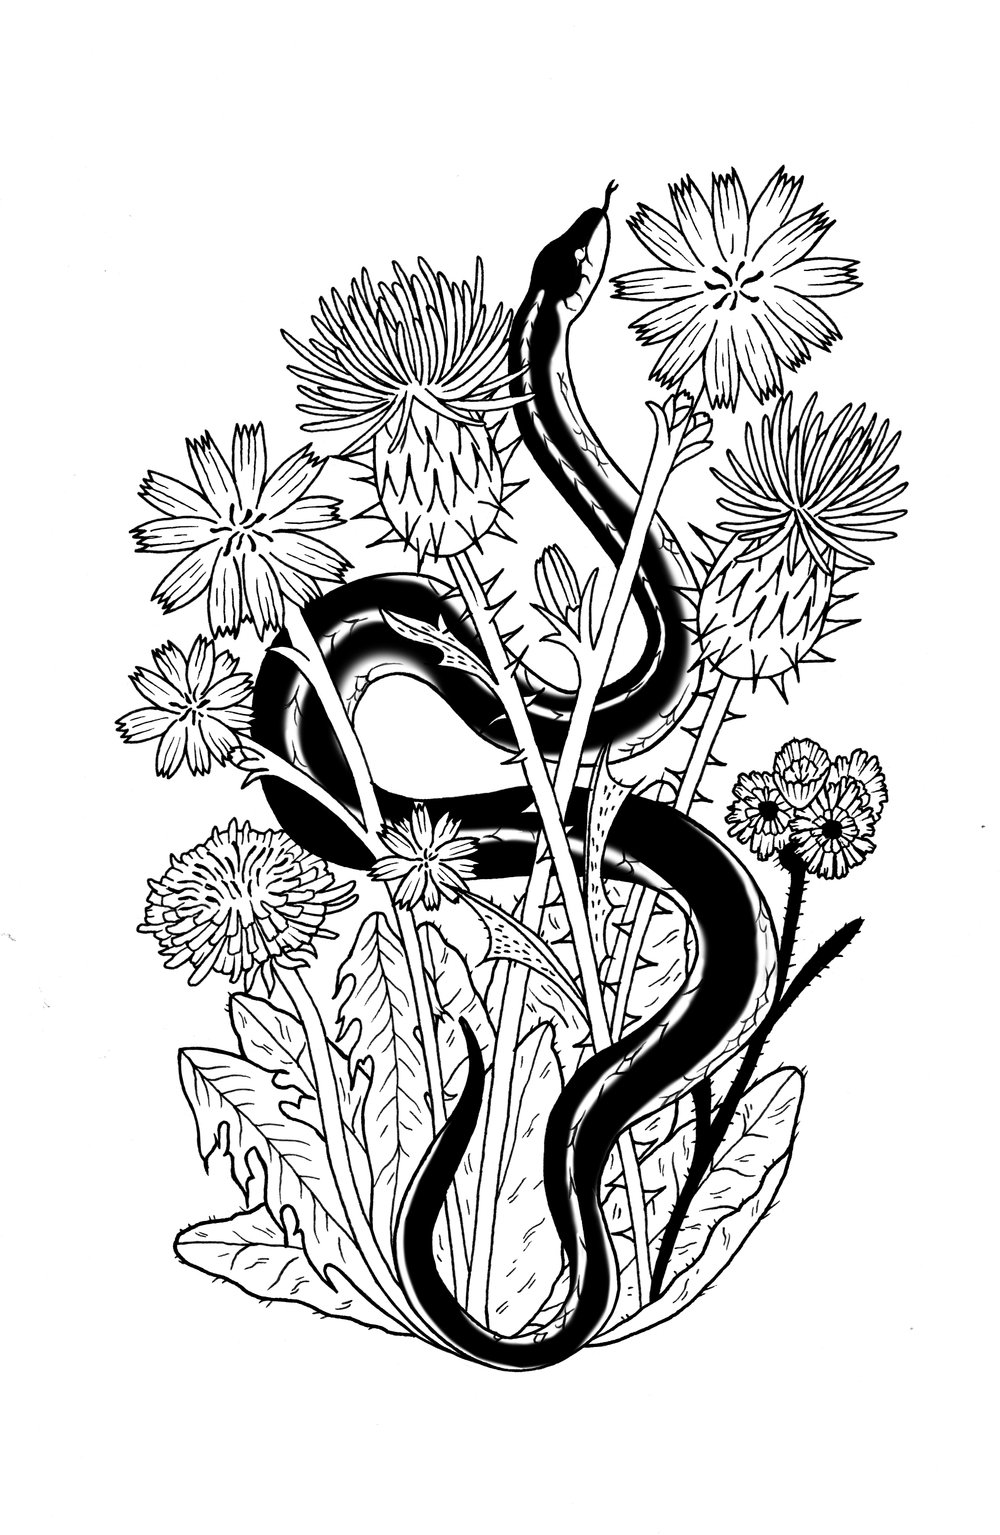 Tattoo design: garter snake and wildflowers.